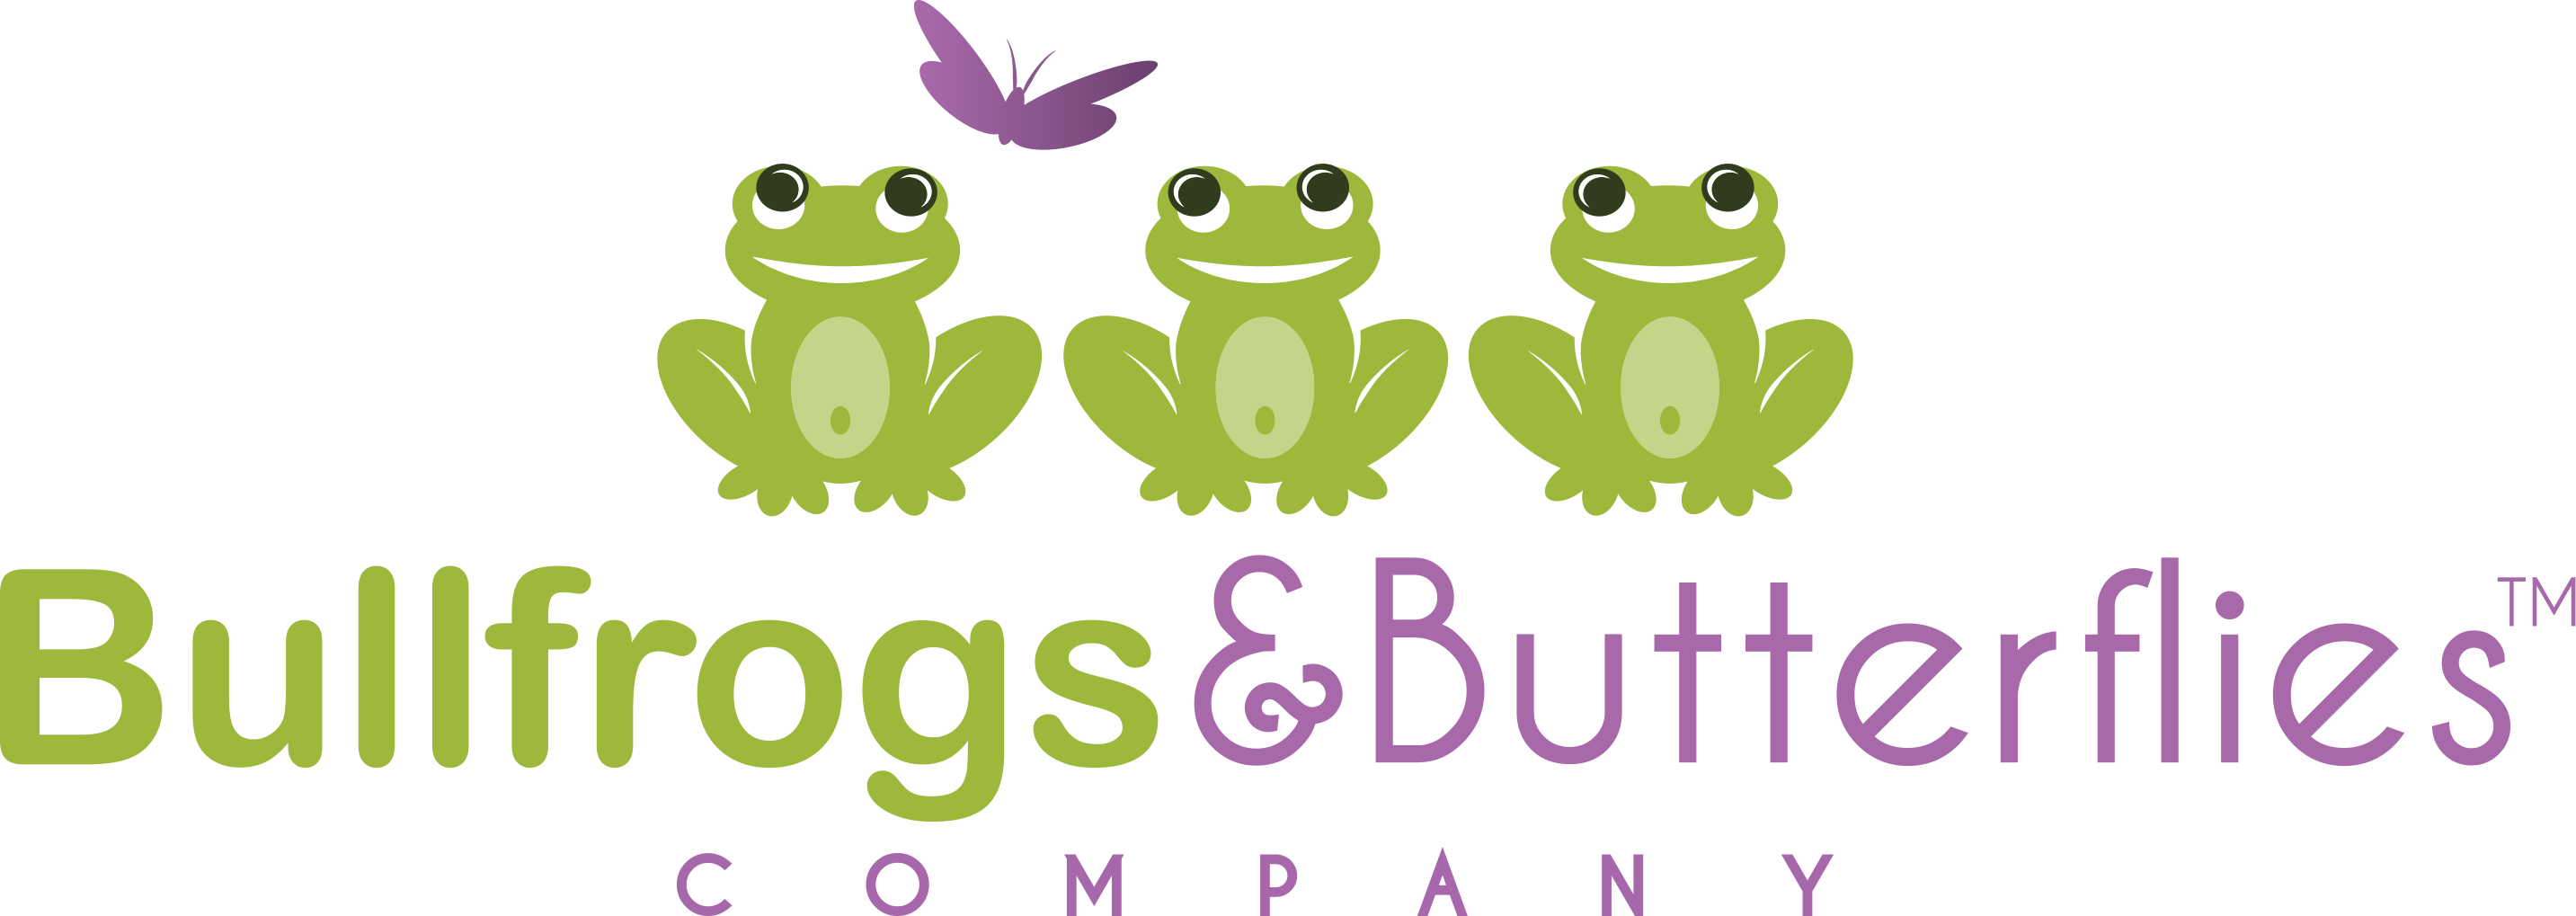 Clipart frog bullfrog. Bullfrogs and butterflies company